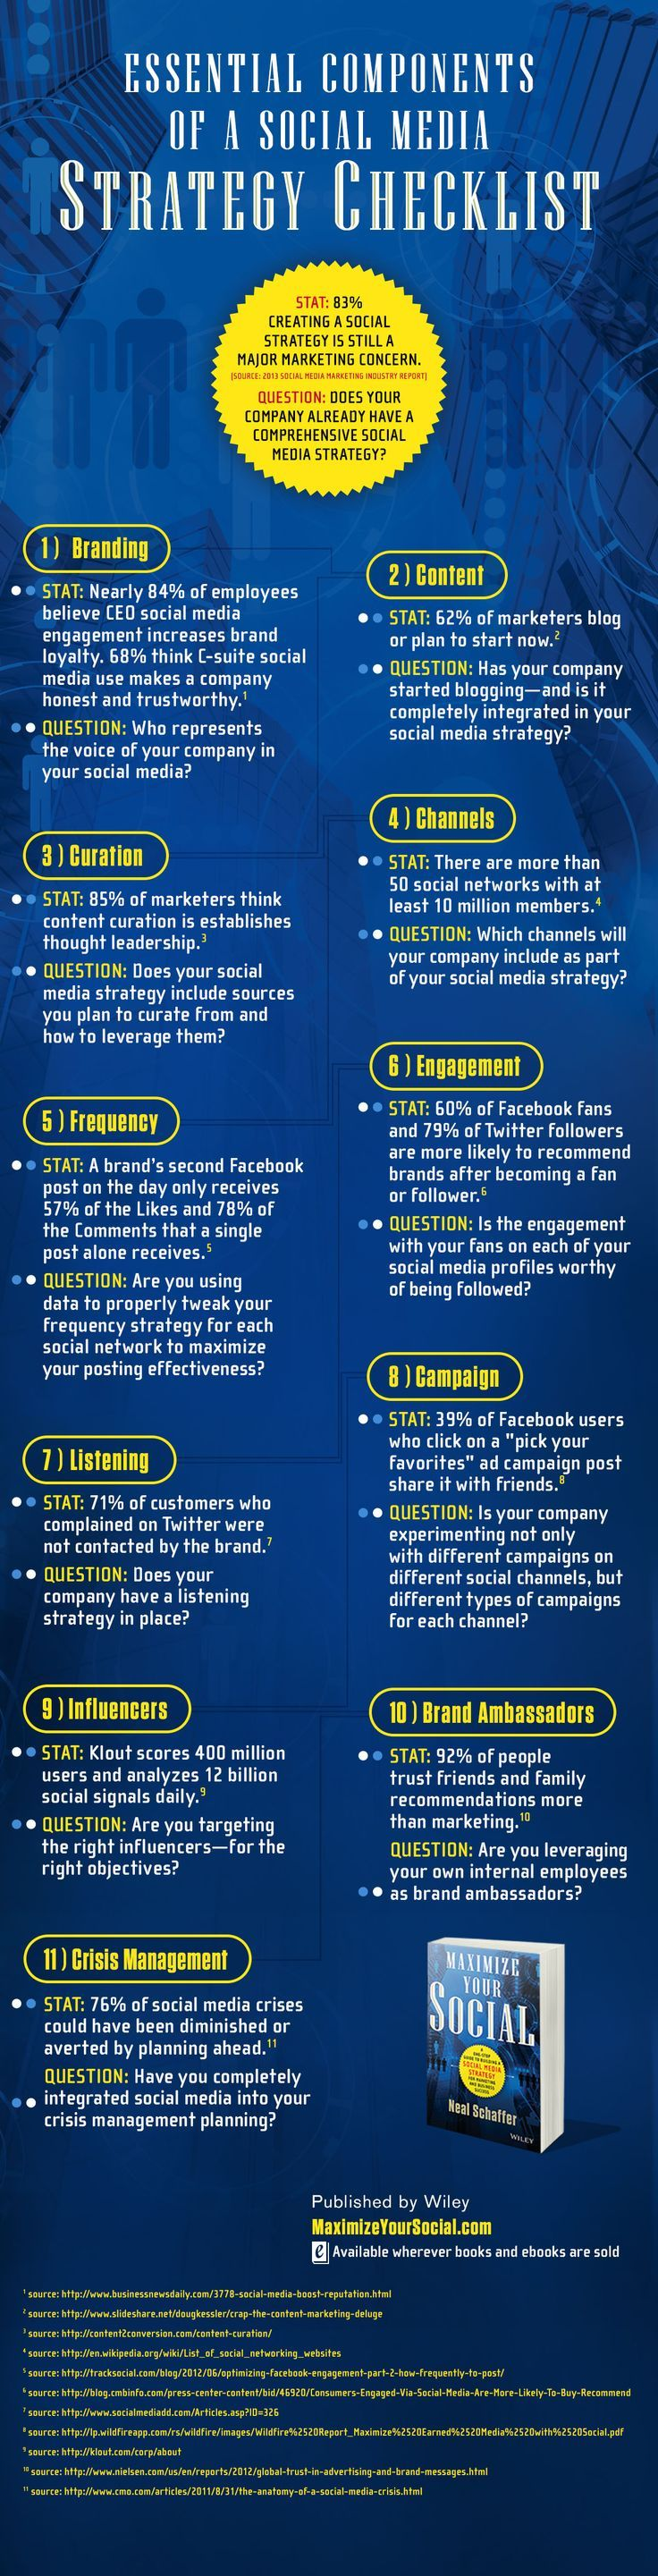 11 Ingredients for a Complete Social Media Strategy Plan #socialmedia #infograpic